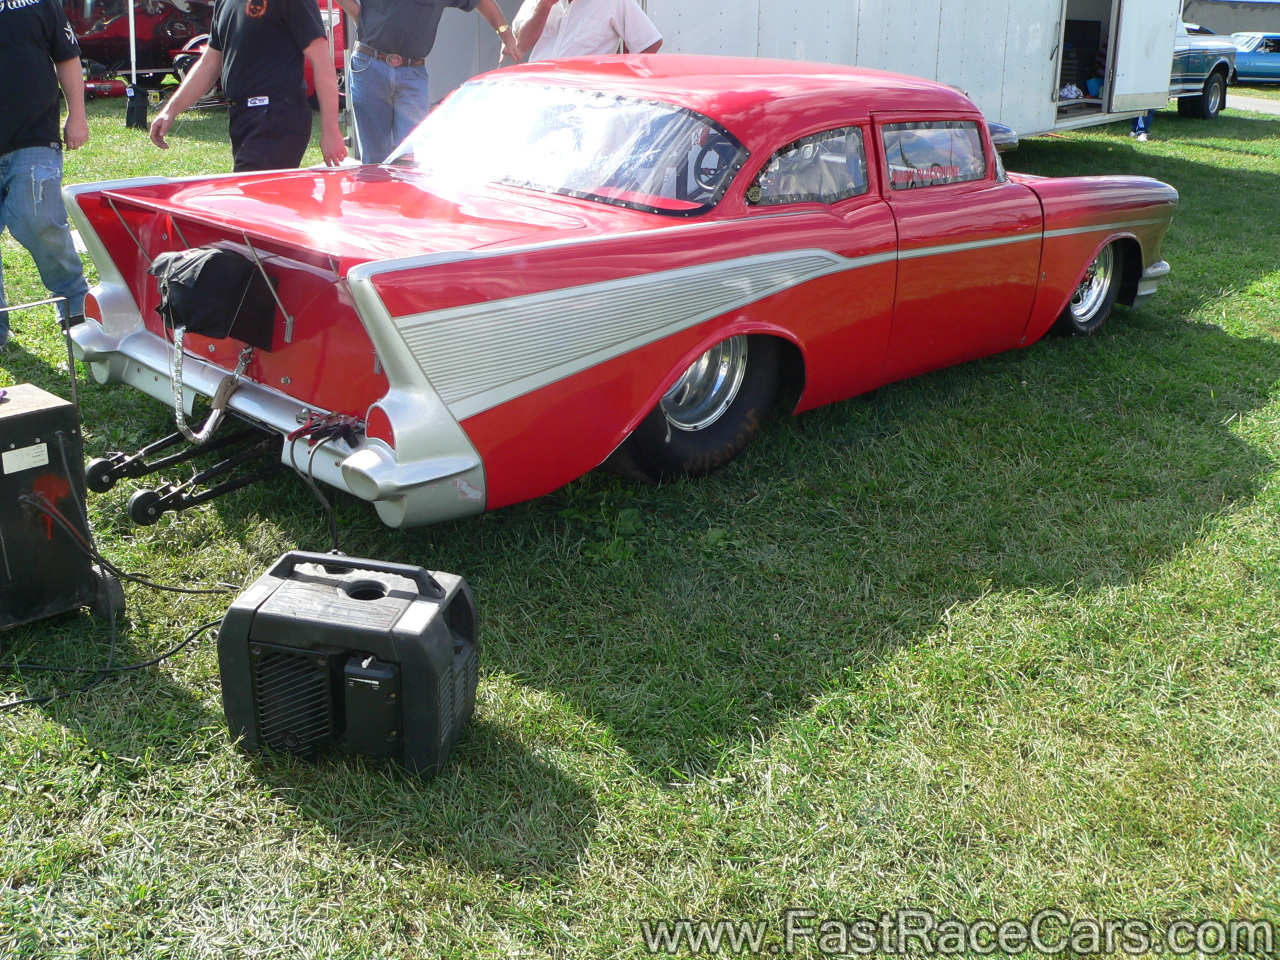 55 Chevy Drag Race Car http://www.fastracecars.com/categories/Drag%20Race%20Cars/55%20-%2057%20Chevrolets/large/shoebox-10.html